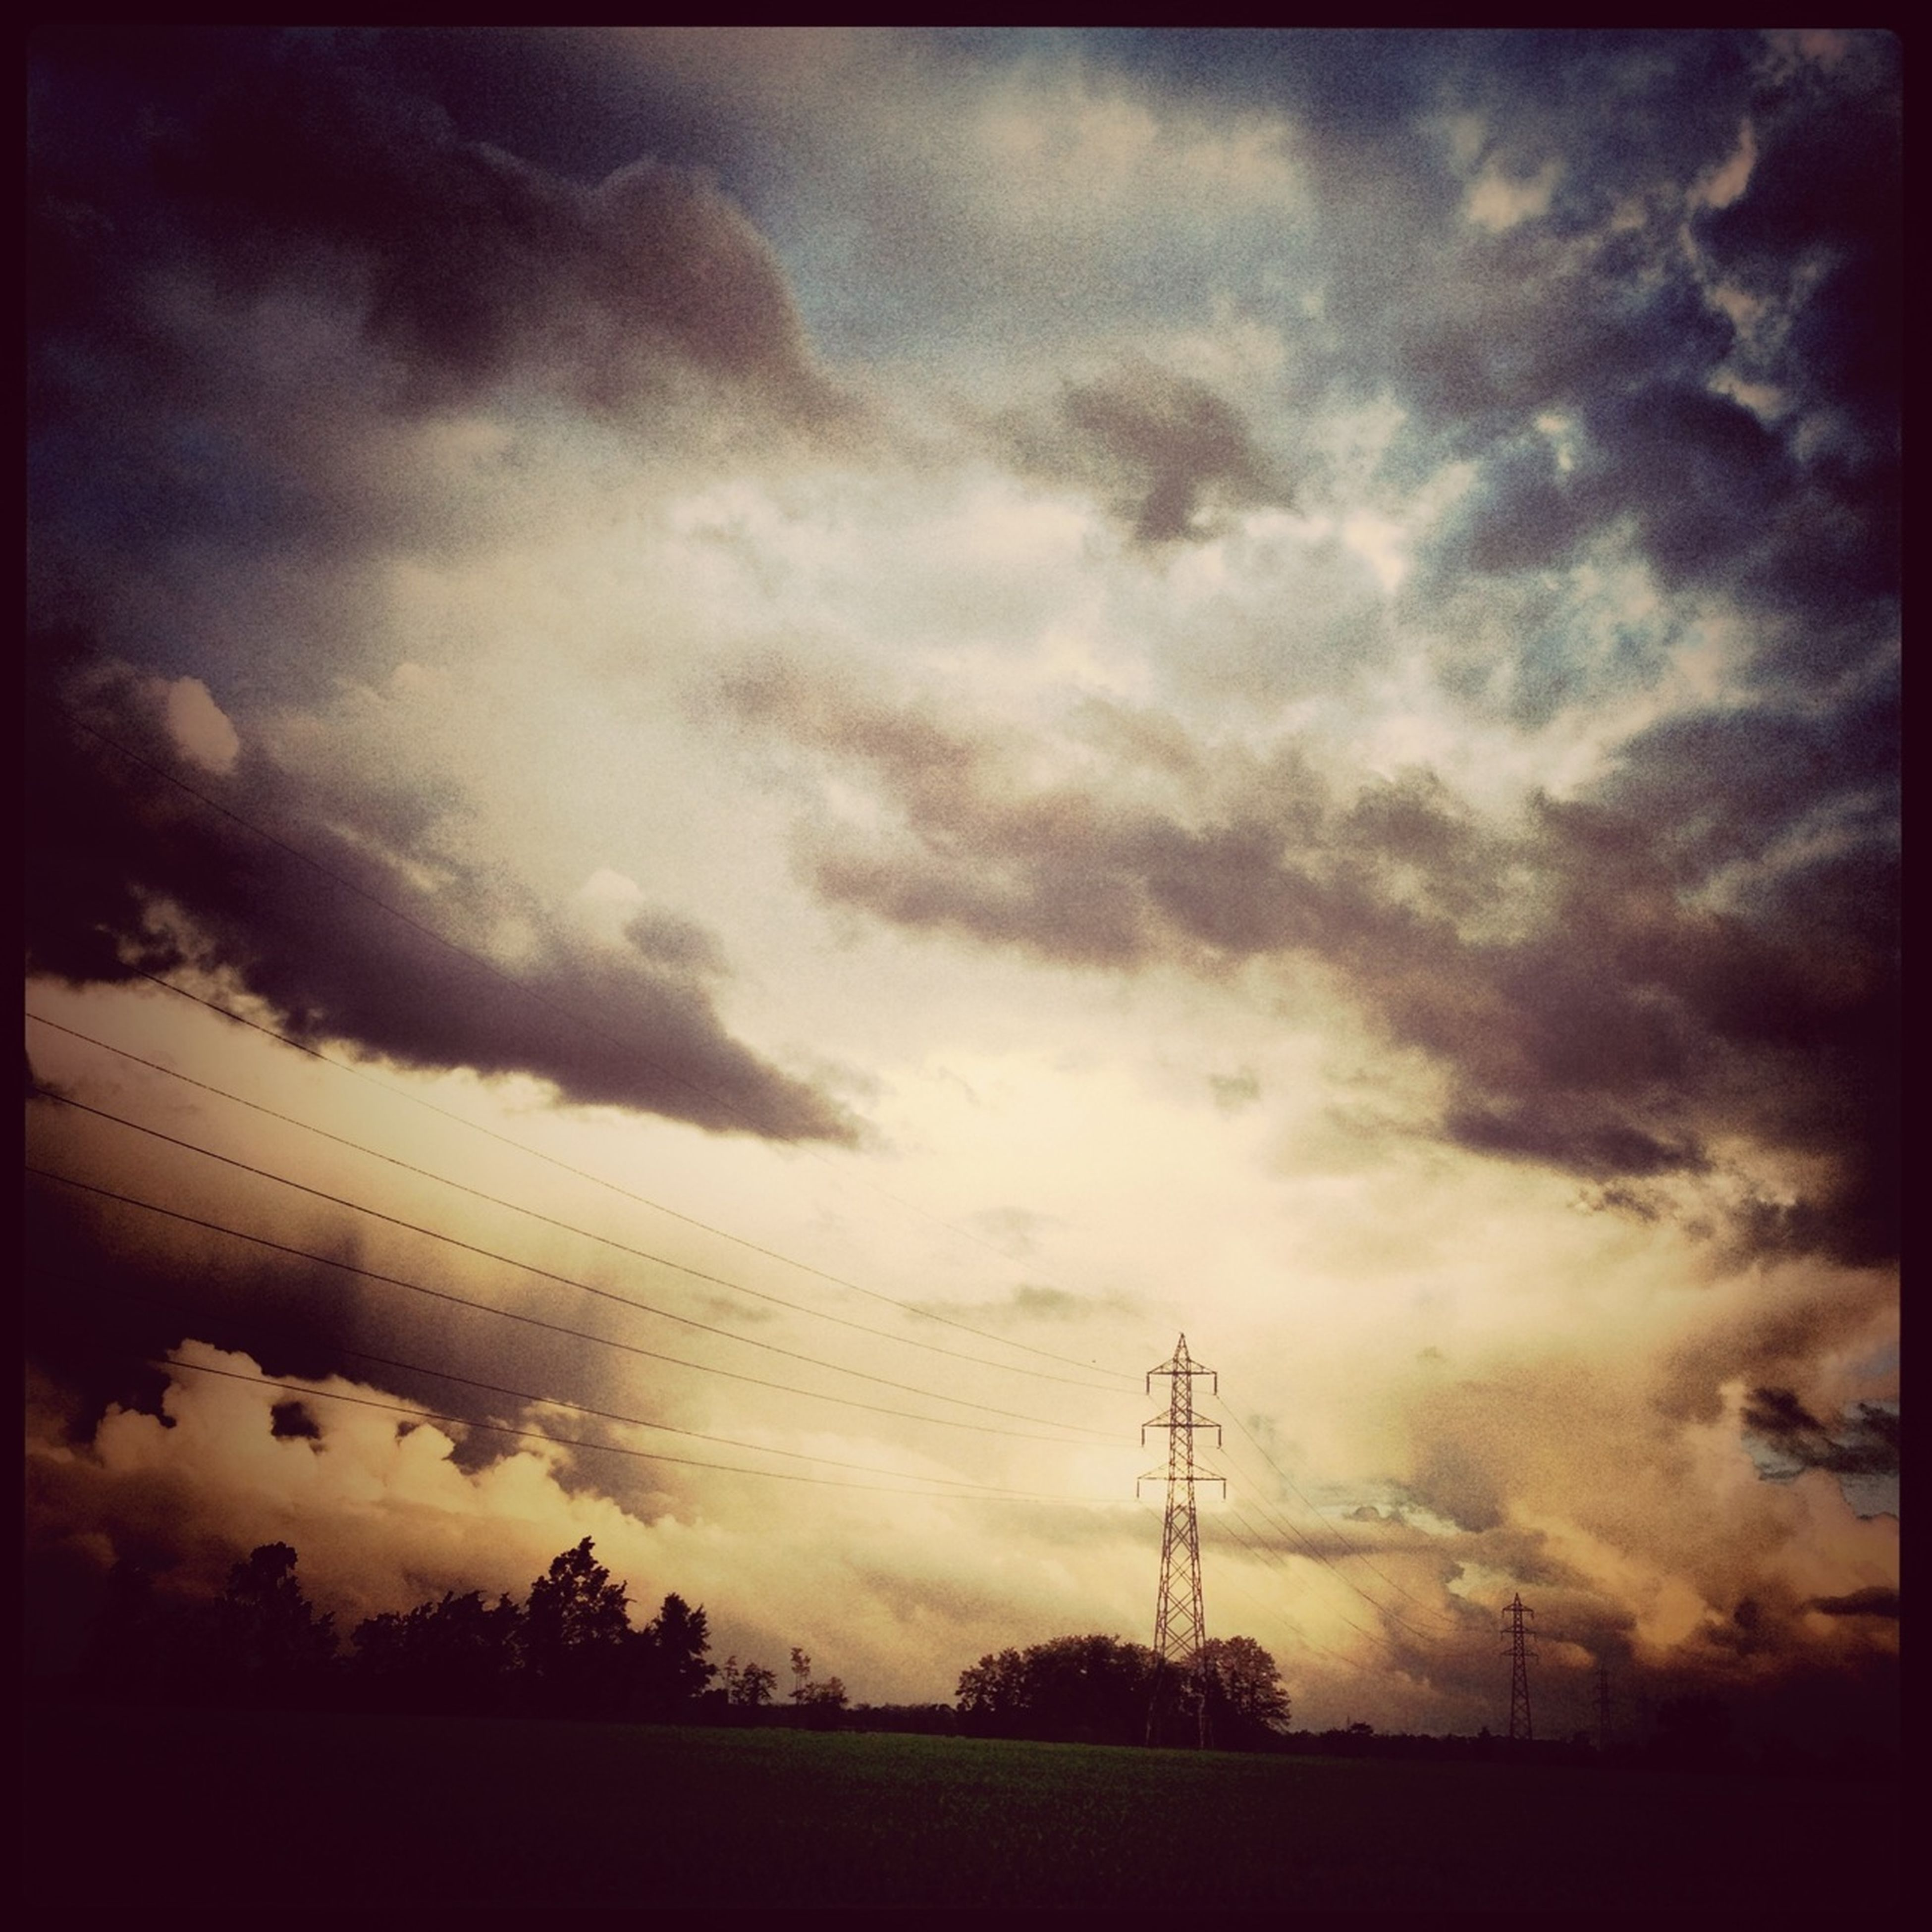 sky, cloud - sky, power line, electricity pylon, cloudy, low angle view, silhouette, electricity, power supply, connection, fuel and power generation, cloud, beauty in nature, scenics, sunset, tranquility, overcast, weather, nature, tranquil scene